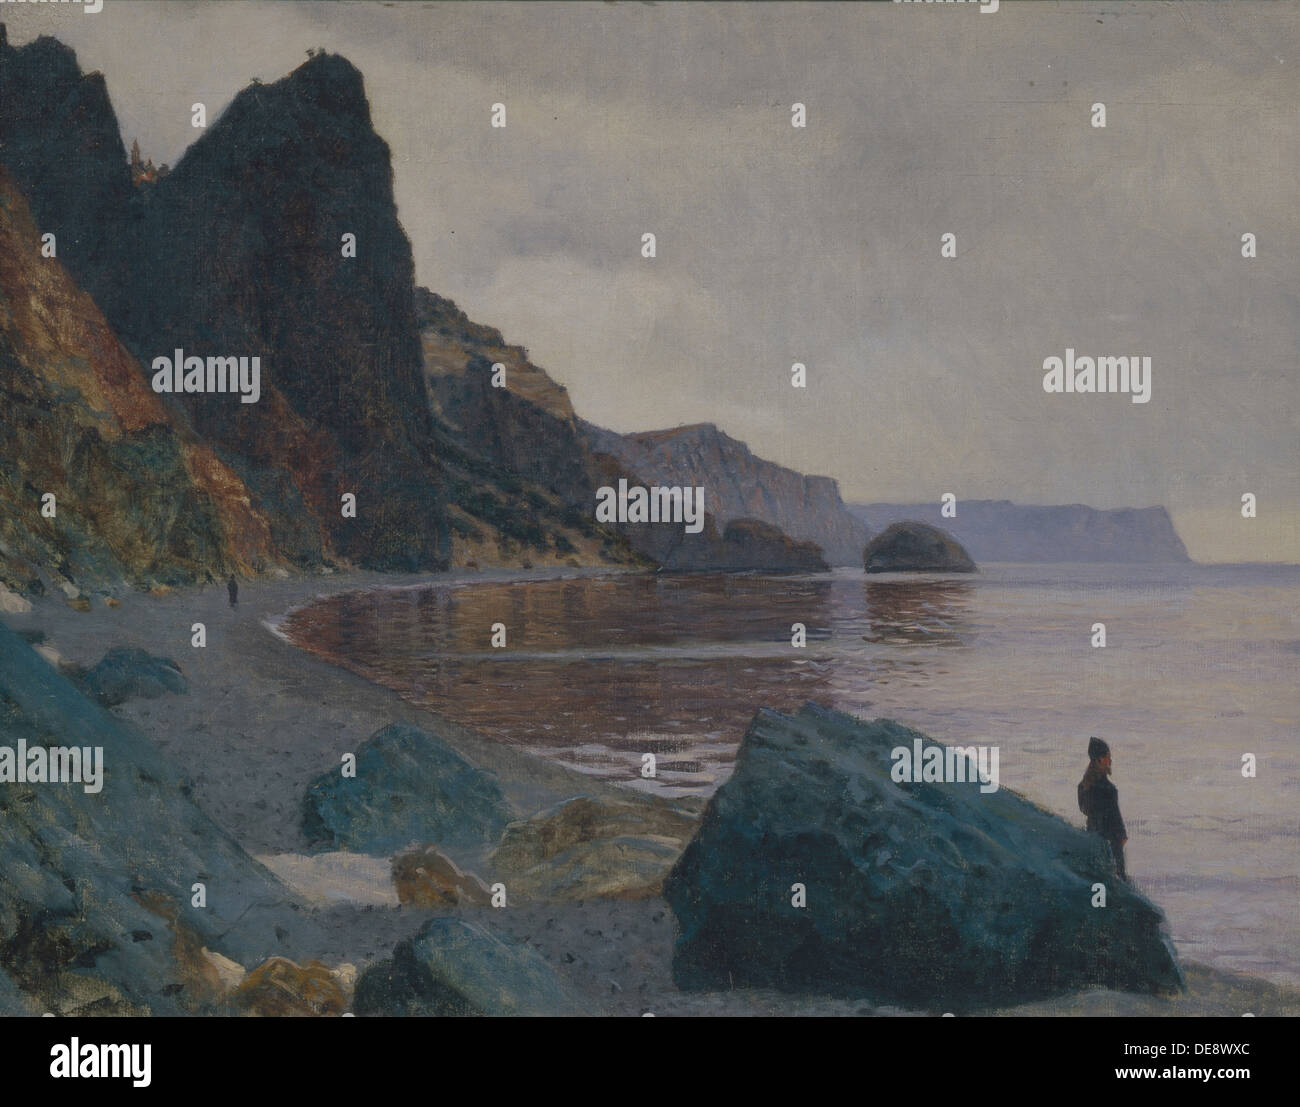 Near the St. George Monastery. Crimea. Artist: Vereshchagin, Vasili Vasilyevich (1842-1904) Stock Photo